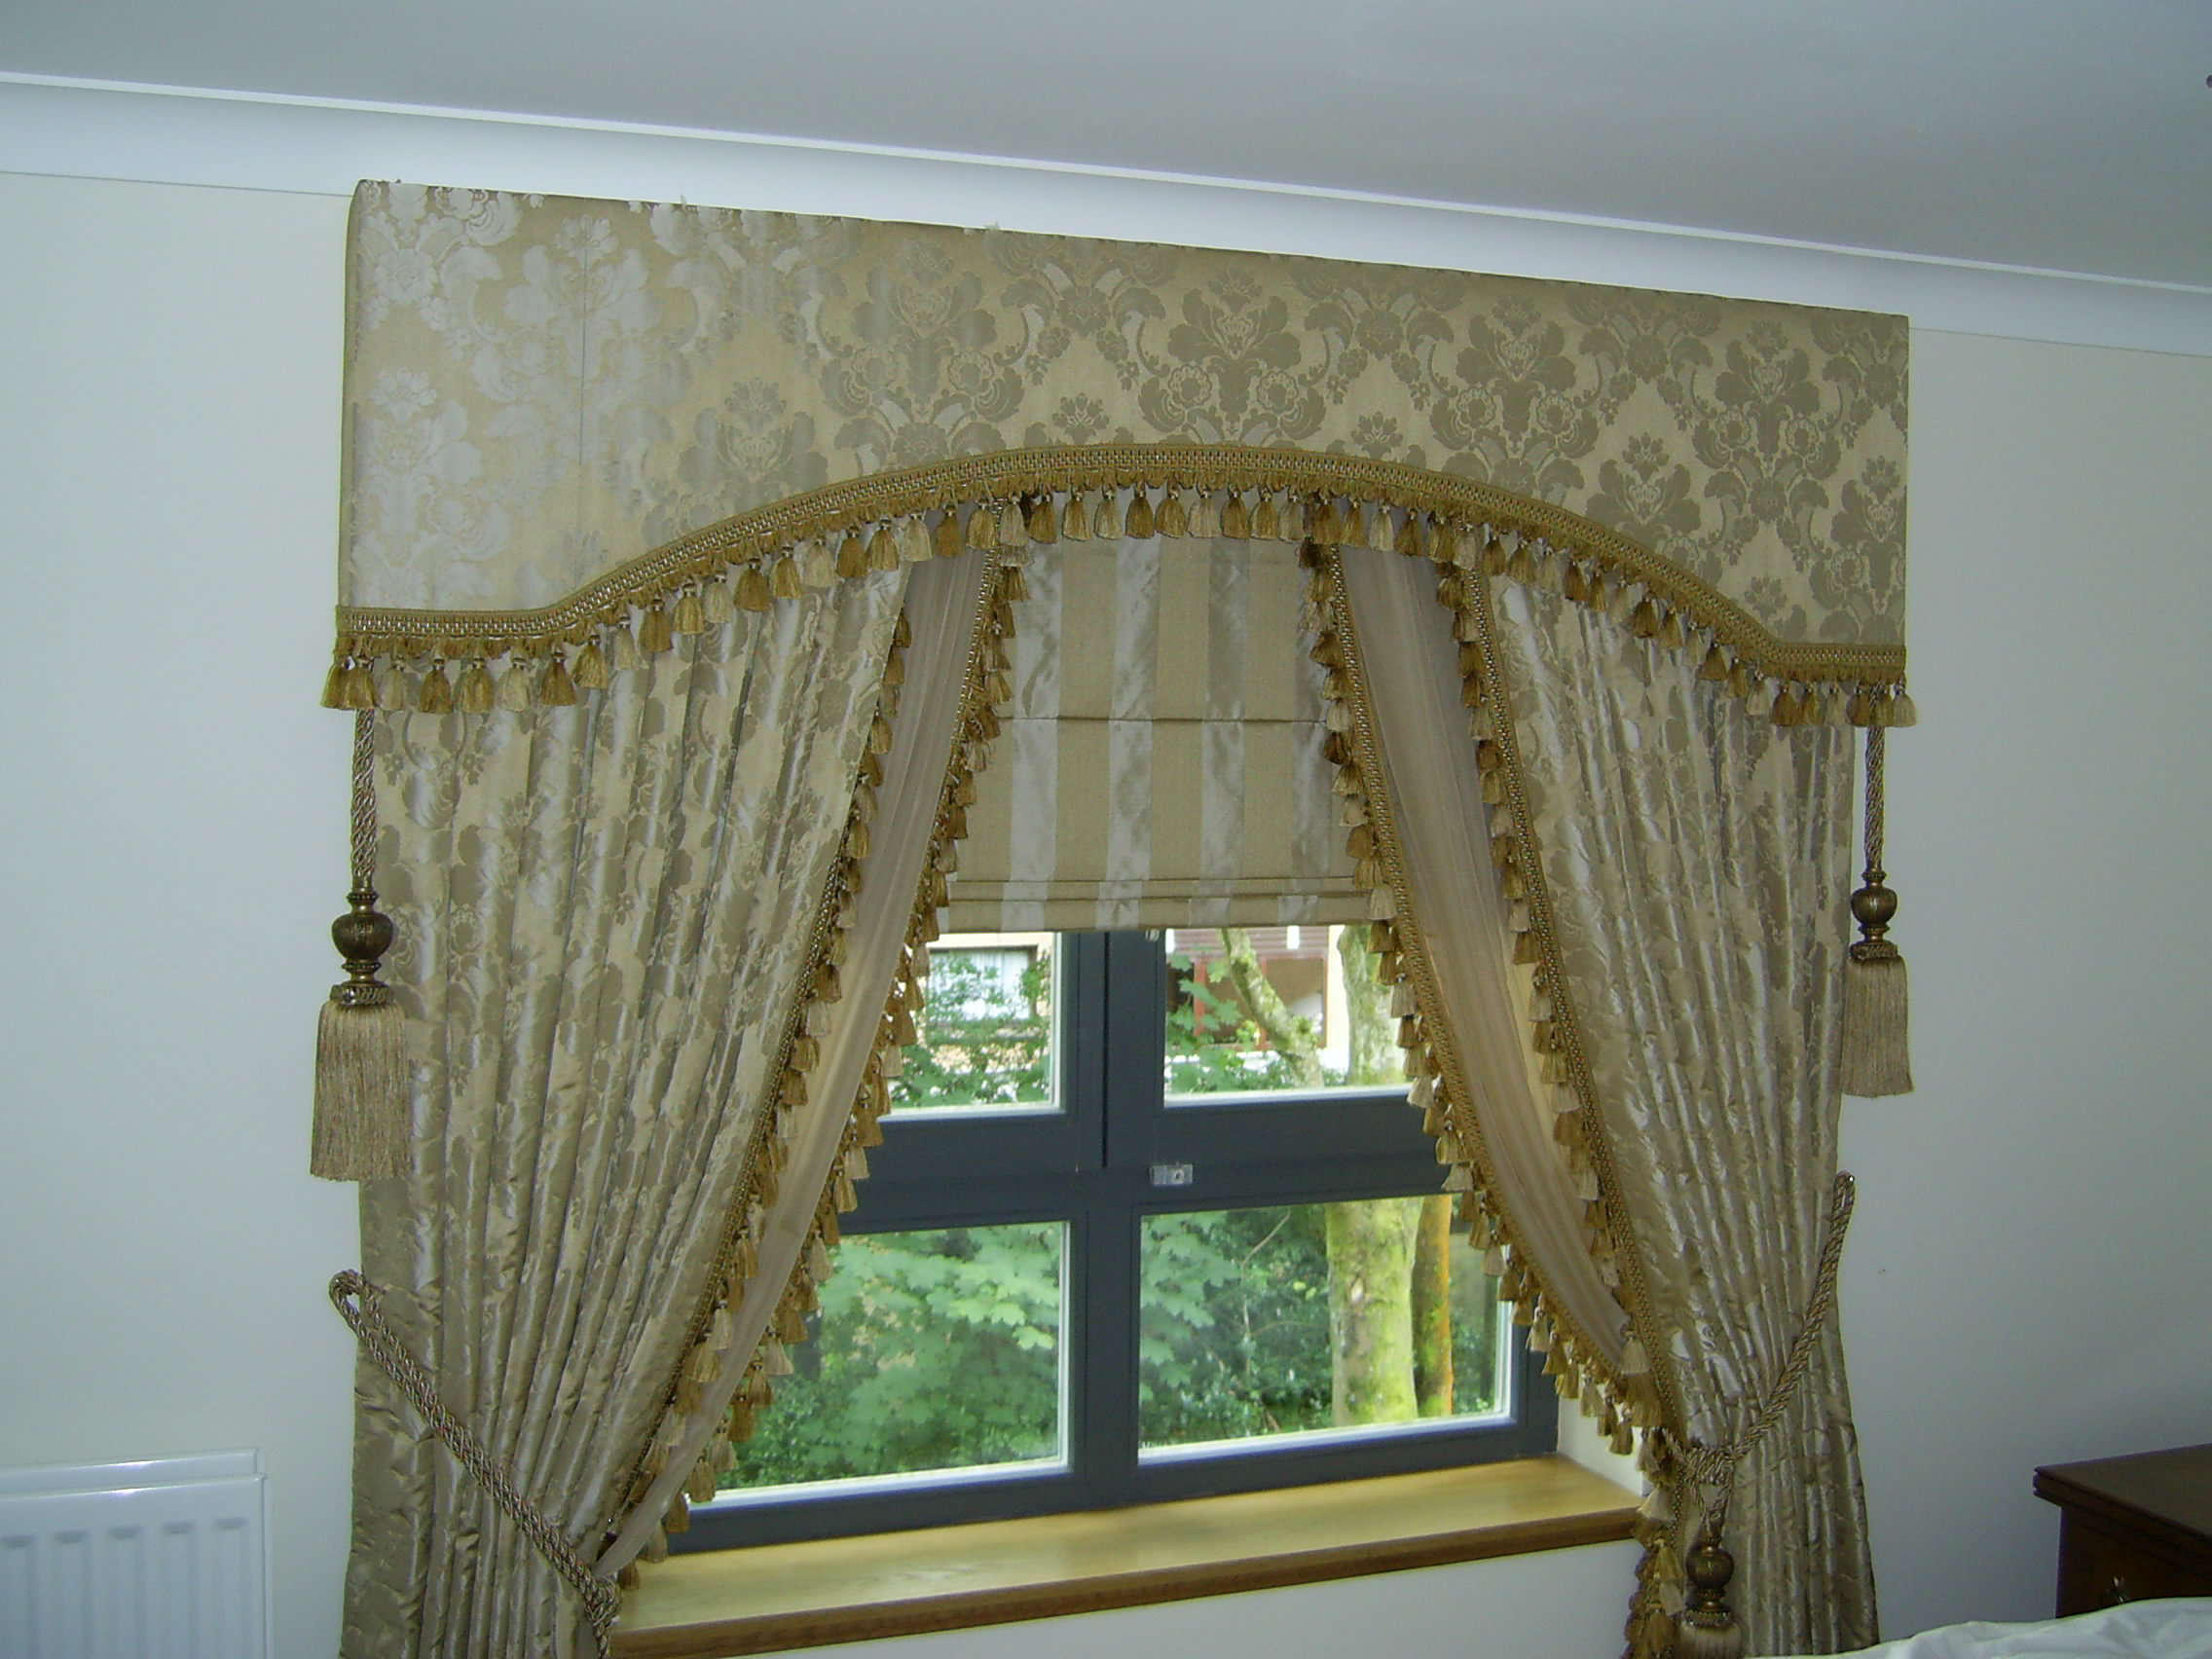 Pelmets for Curtain making service